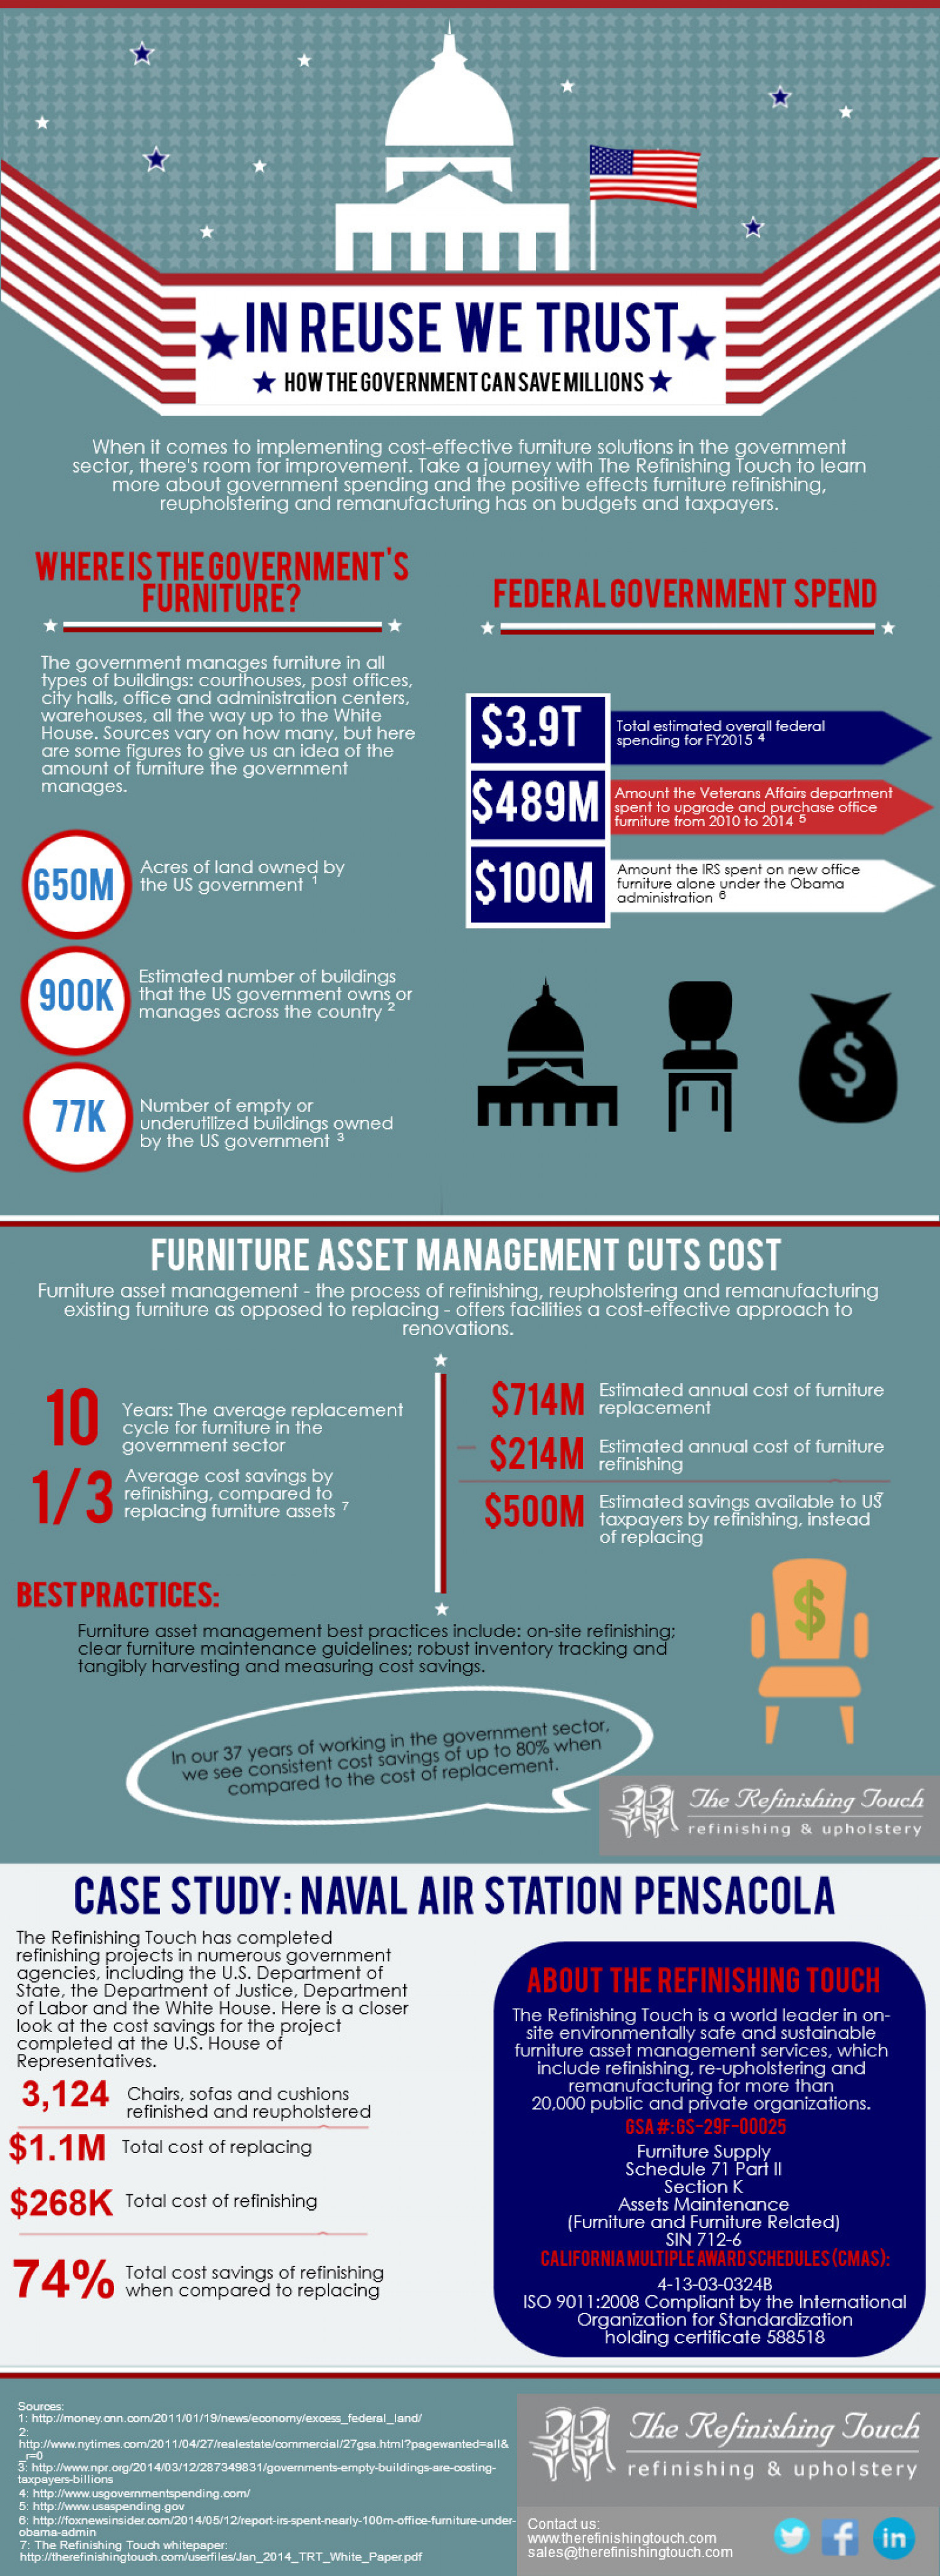 In Reuse We Trust: How The Government Can Save Millions Infographic